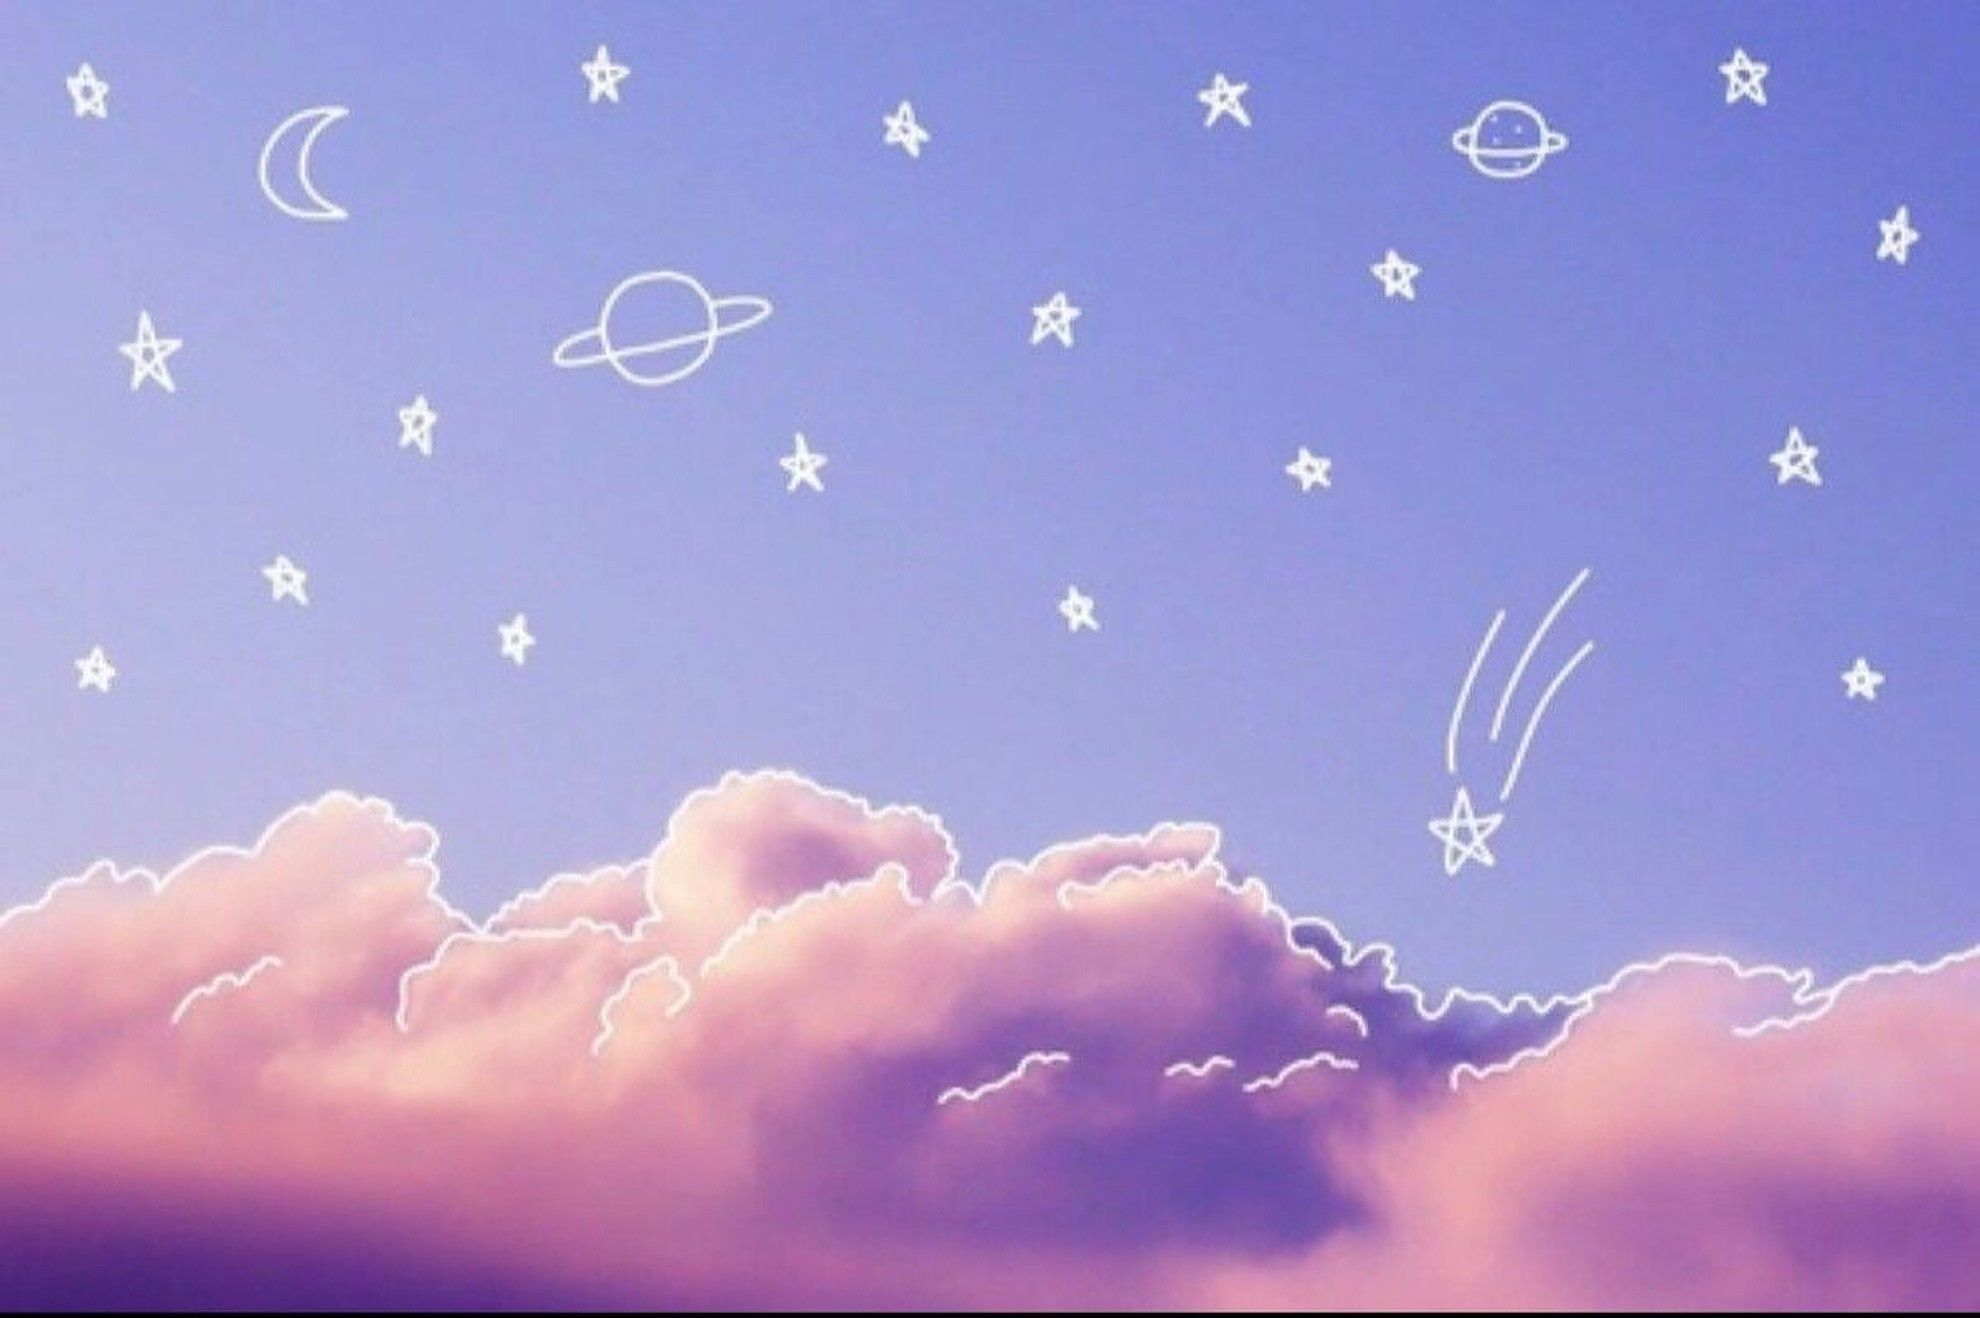 Roblox Theme Doodled Clouds In 2020 Aesthetic Desktop Wallpaper Desktop Wallpaper Art Hipster Wallpaper